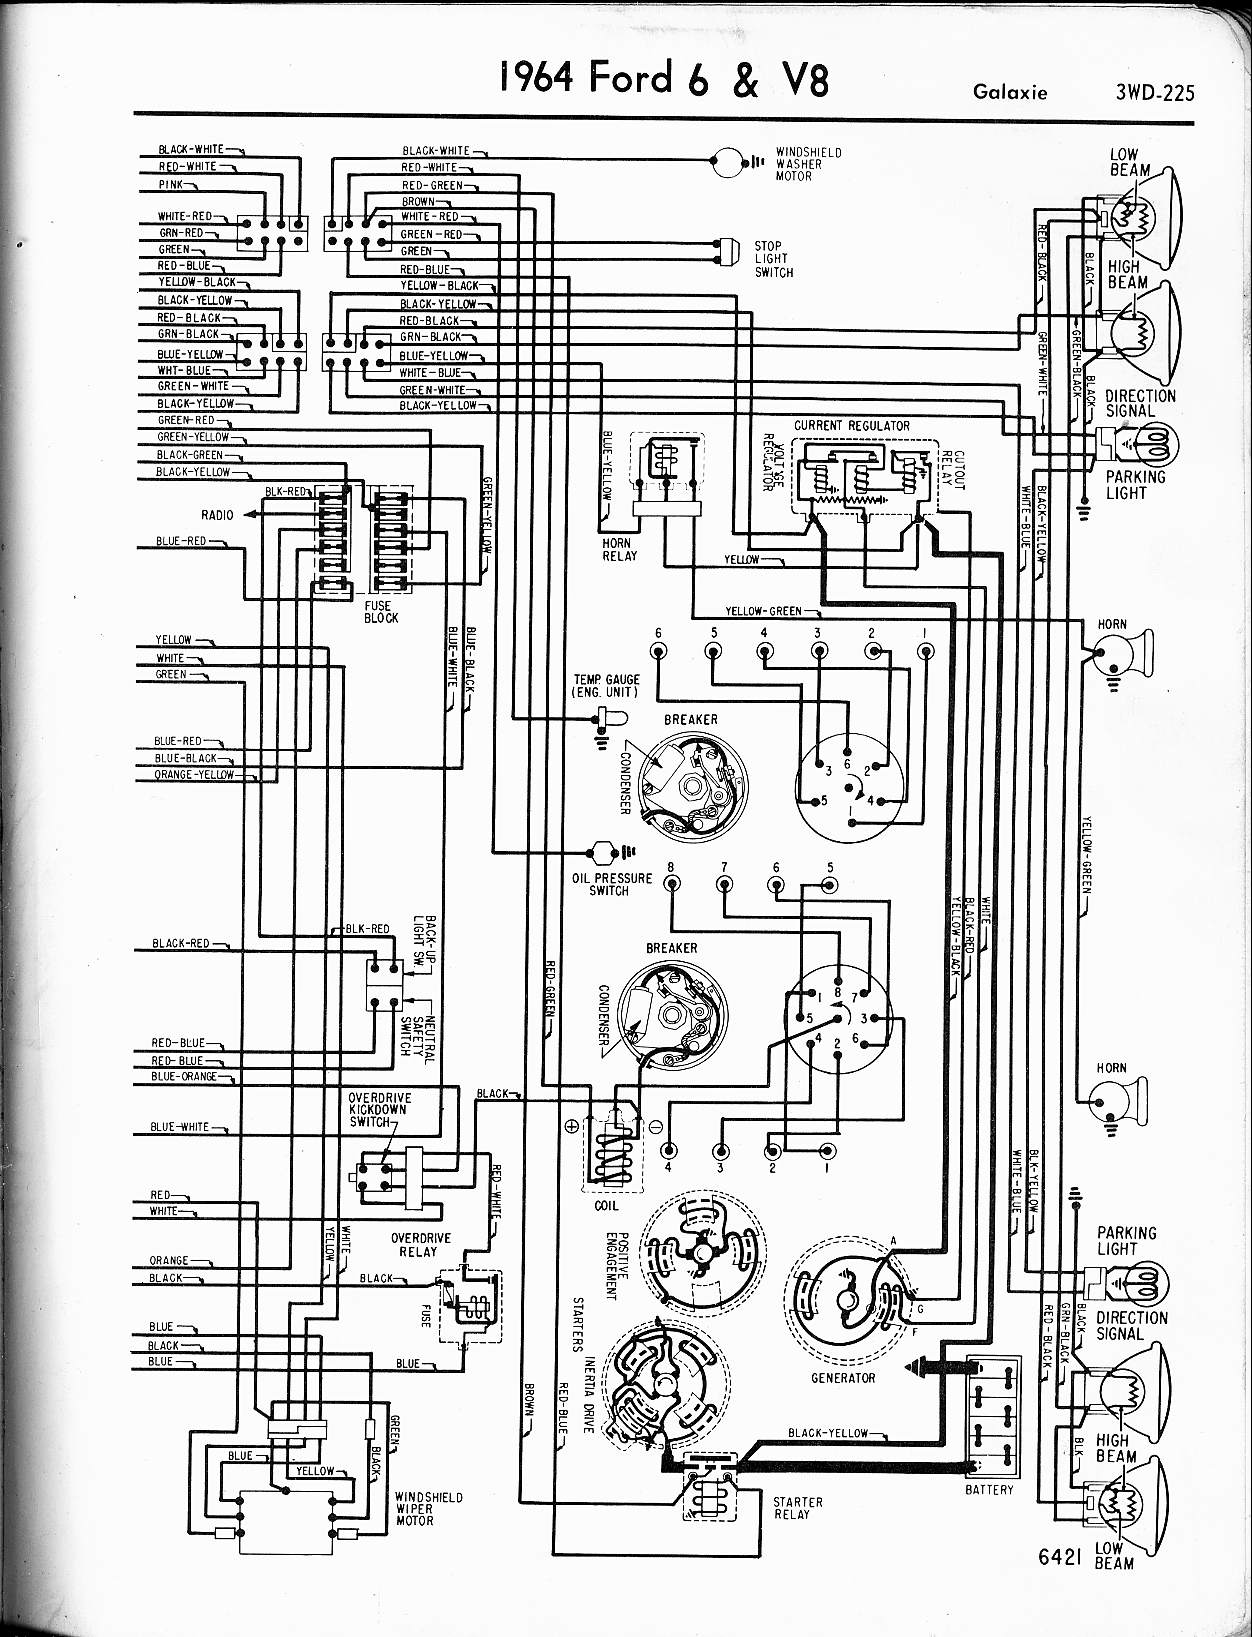 MWire5765 225 57 65 ford wiring diagrams Ford E 350 Wiring Diagrams at gsmx.co